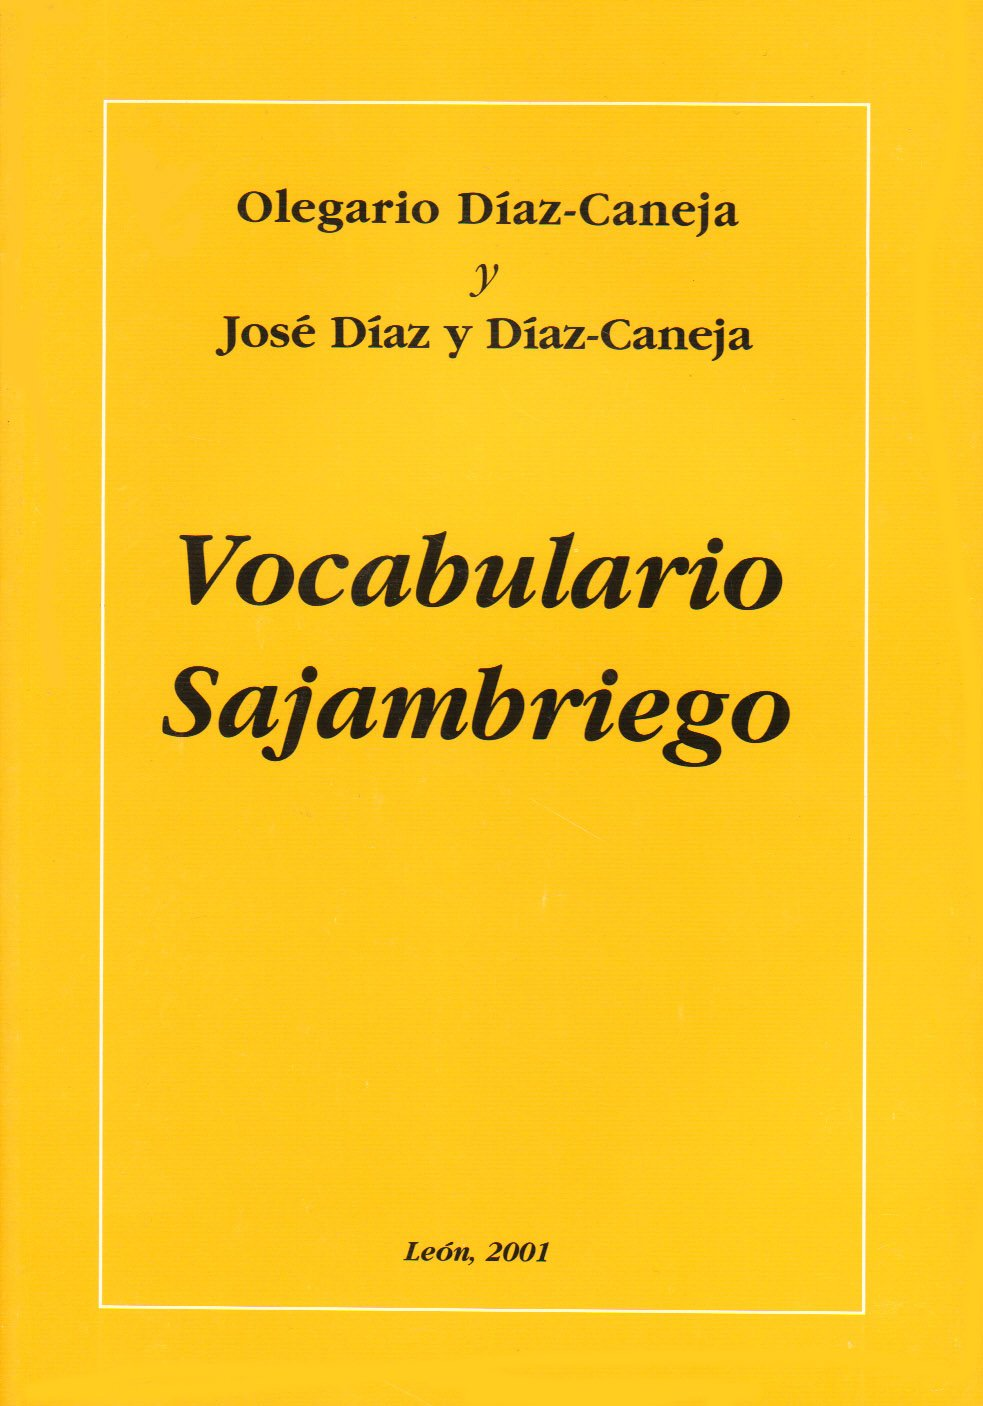 Vocabulario sajambriego